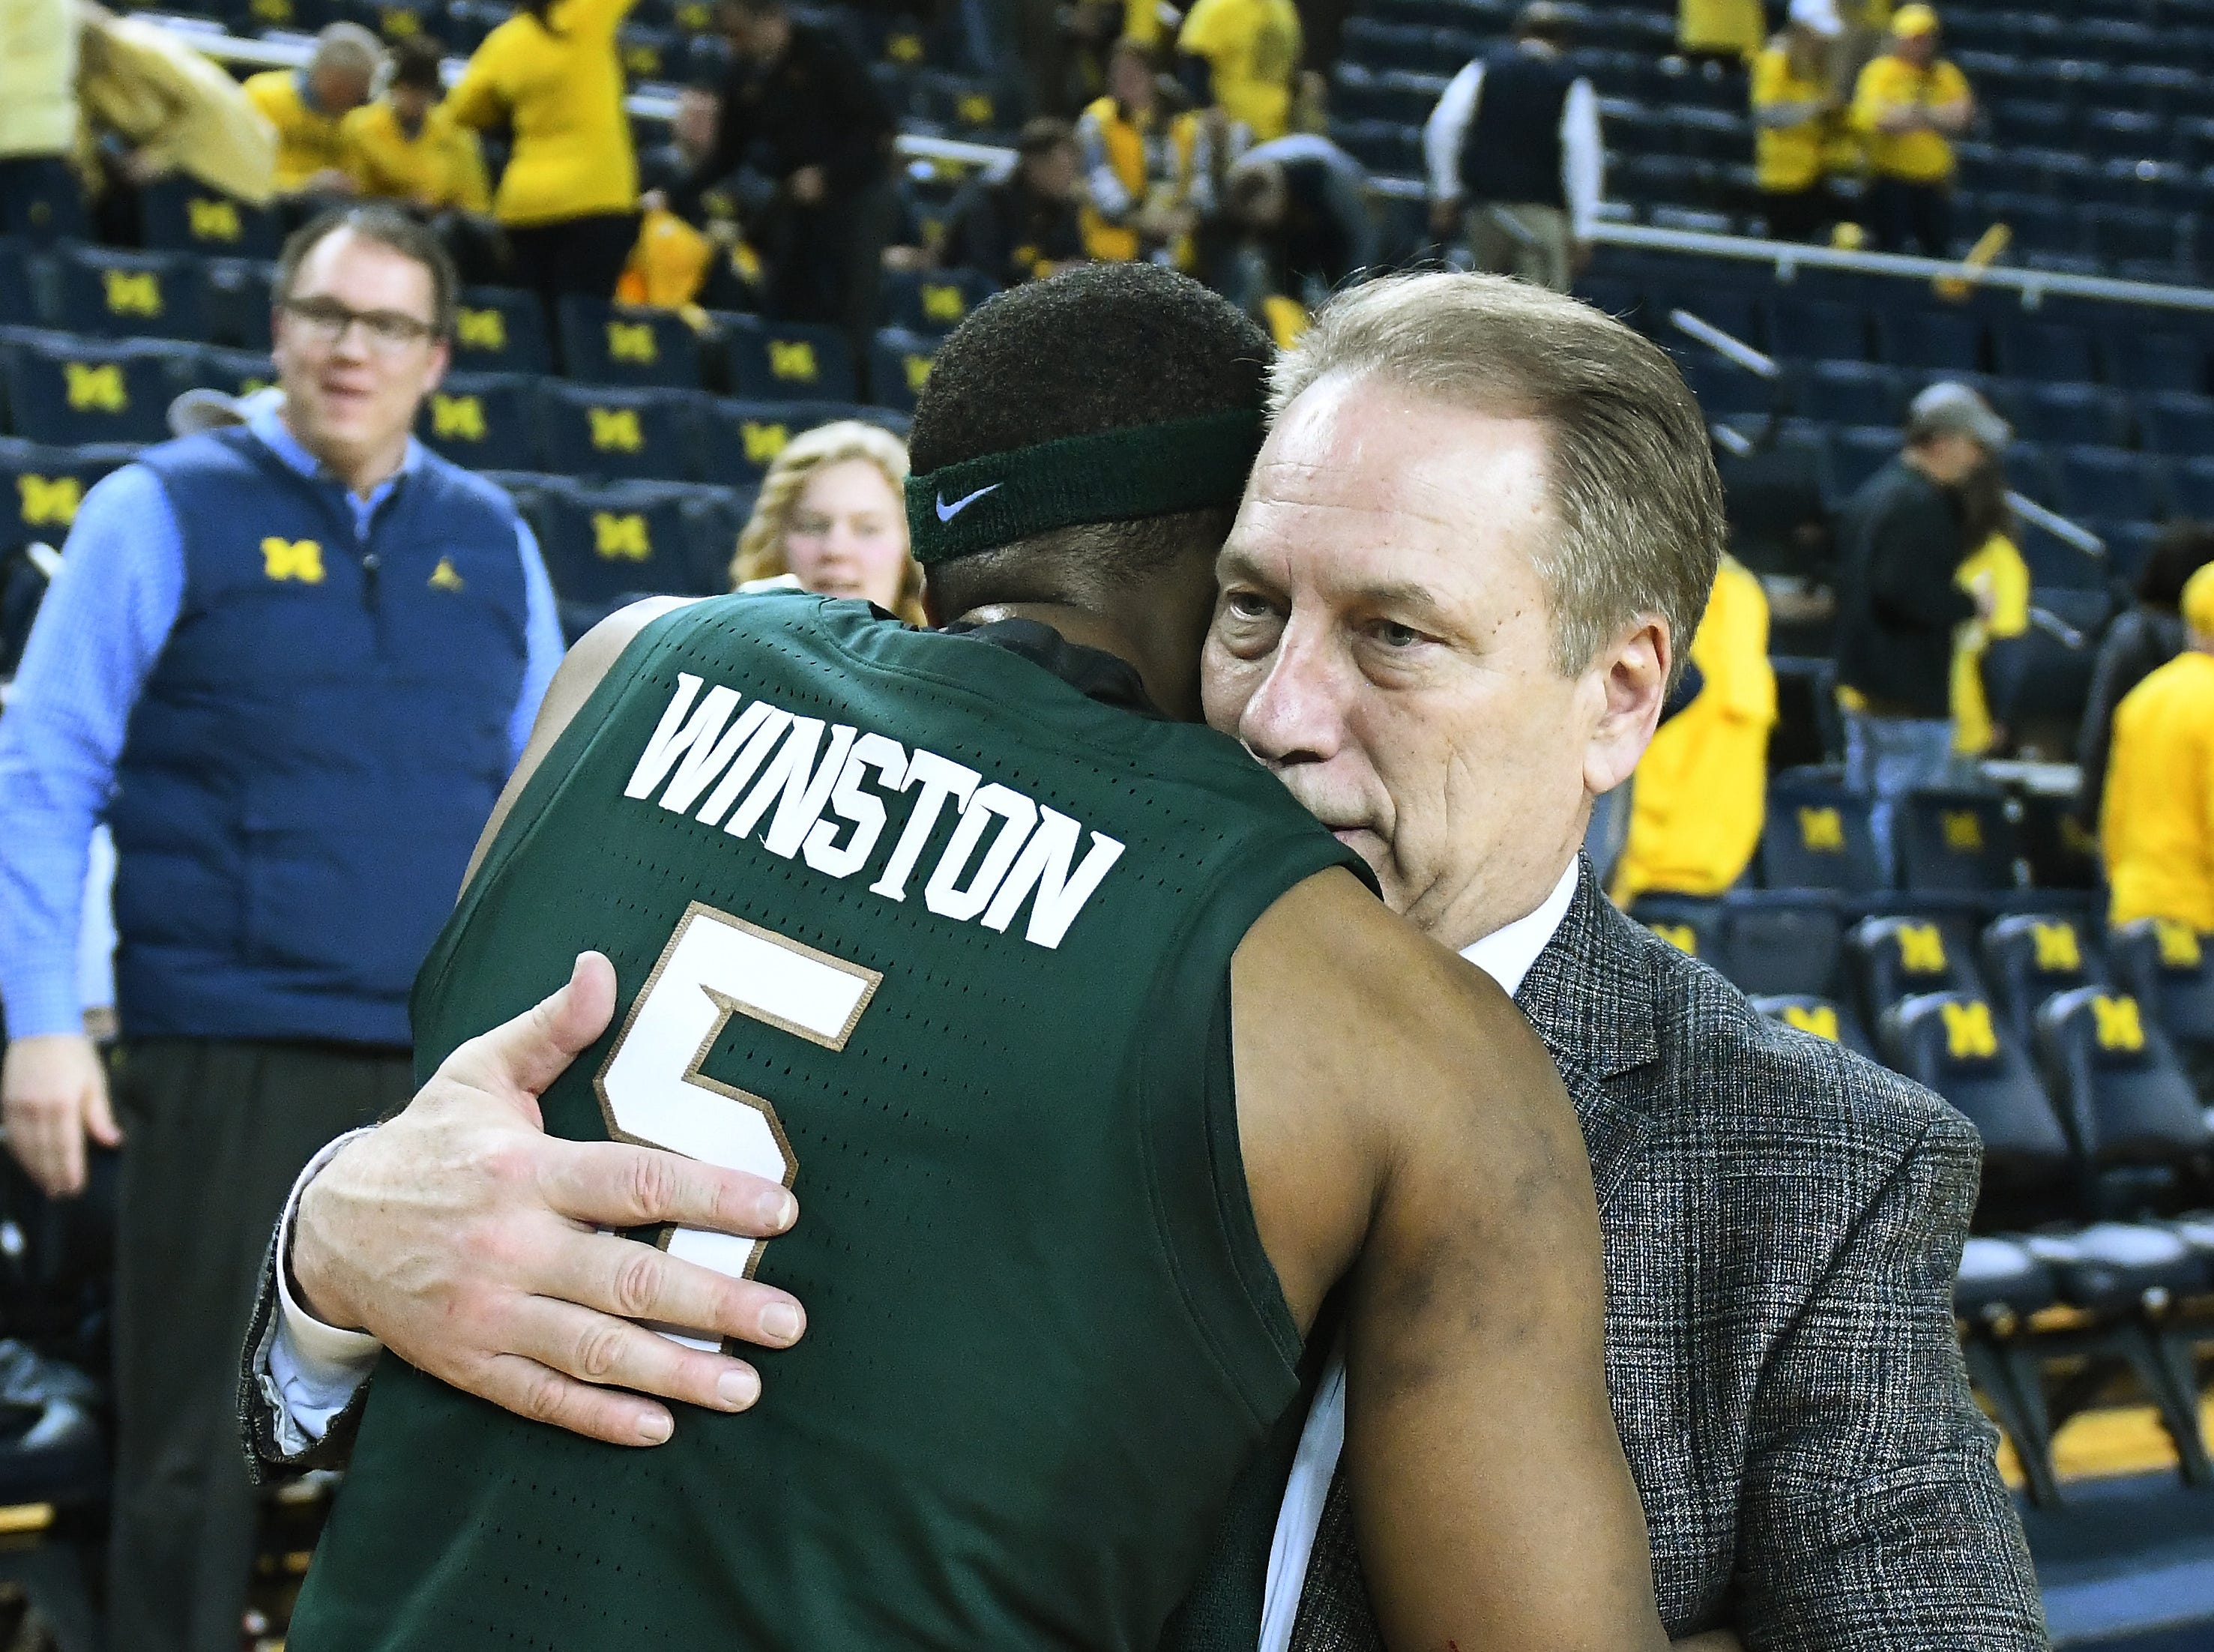 Michigan State's Cassius Winston gets a hug from coach Tom Izzo after the State victory. Michigan's in the second half. University of Michigan vs. Michigan State at Crisler Center in Ann Arbor, Michigan on February 24, 2019.  (Image by Daniel Mears / The Detroit News)  77-70